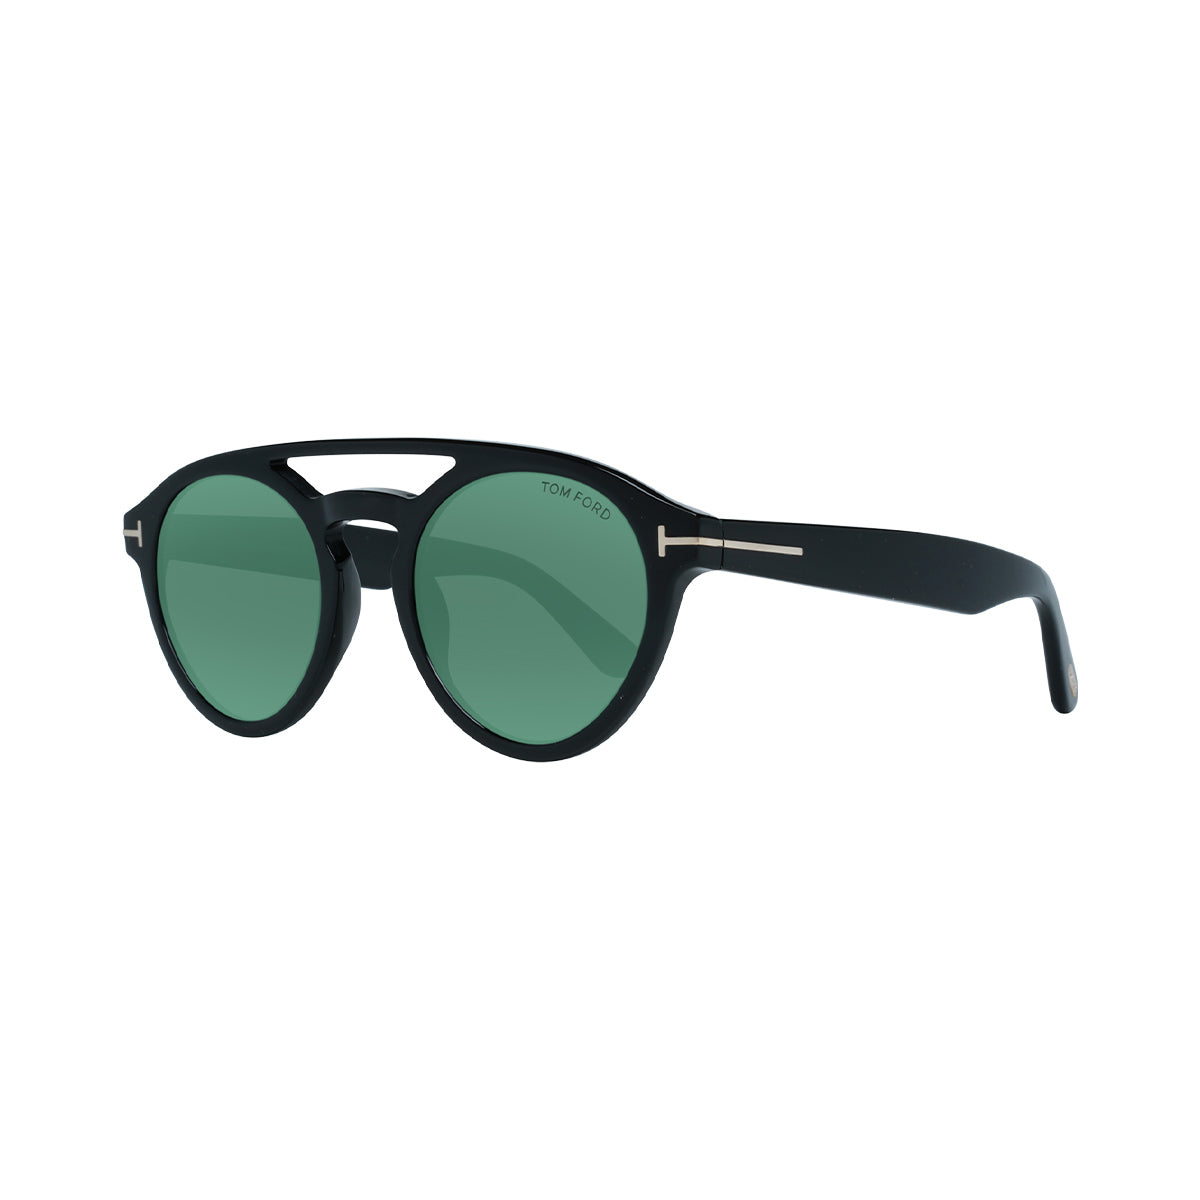 Tom Ford Mens Sunglasses FT0537 01N 50